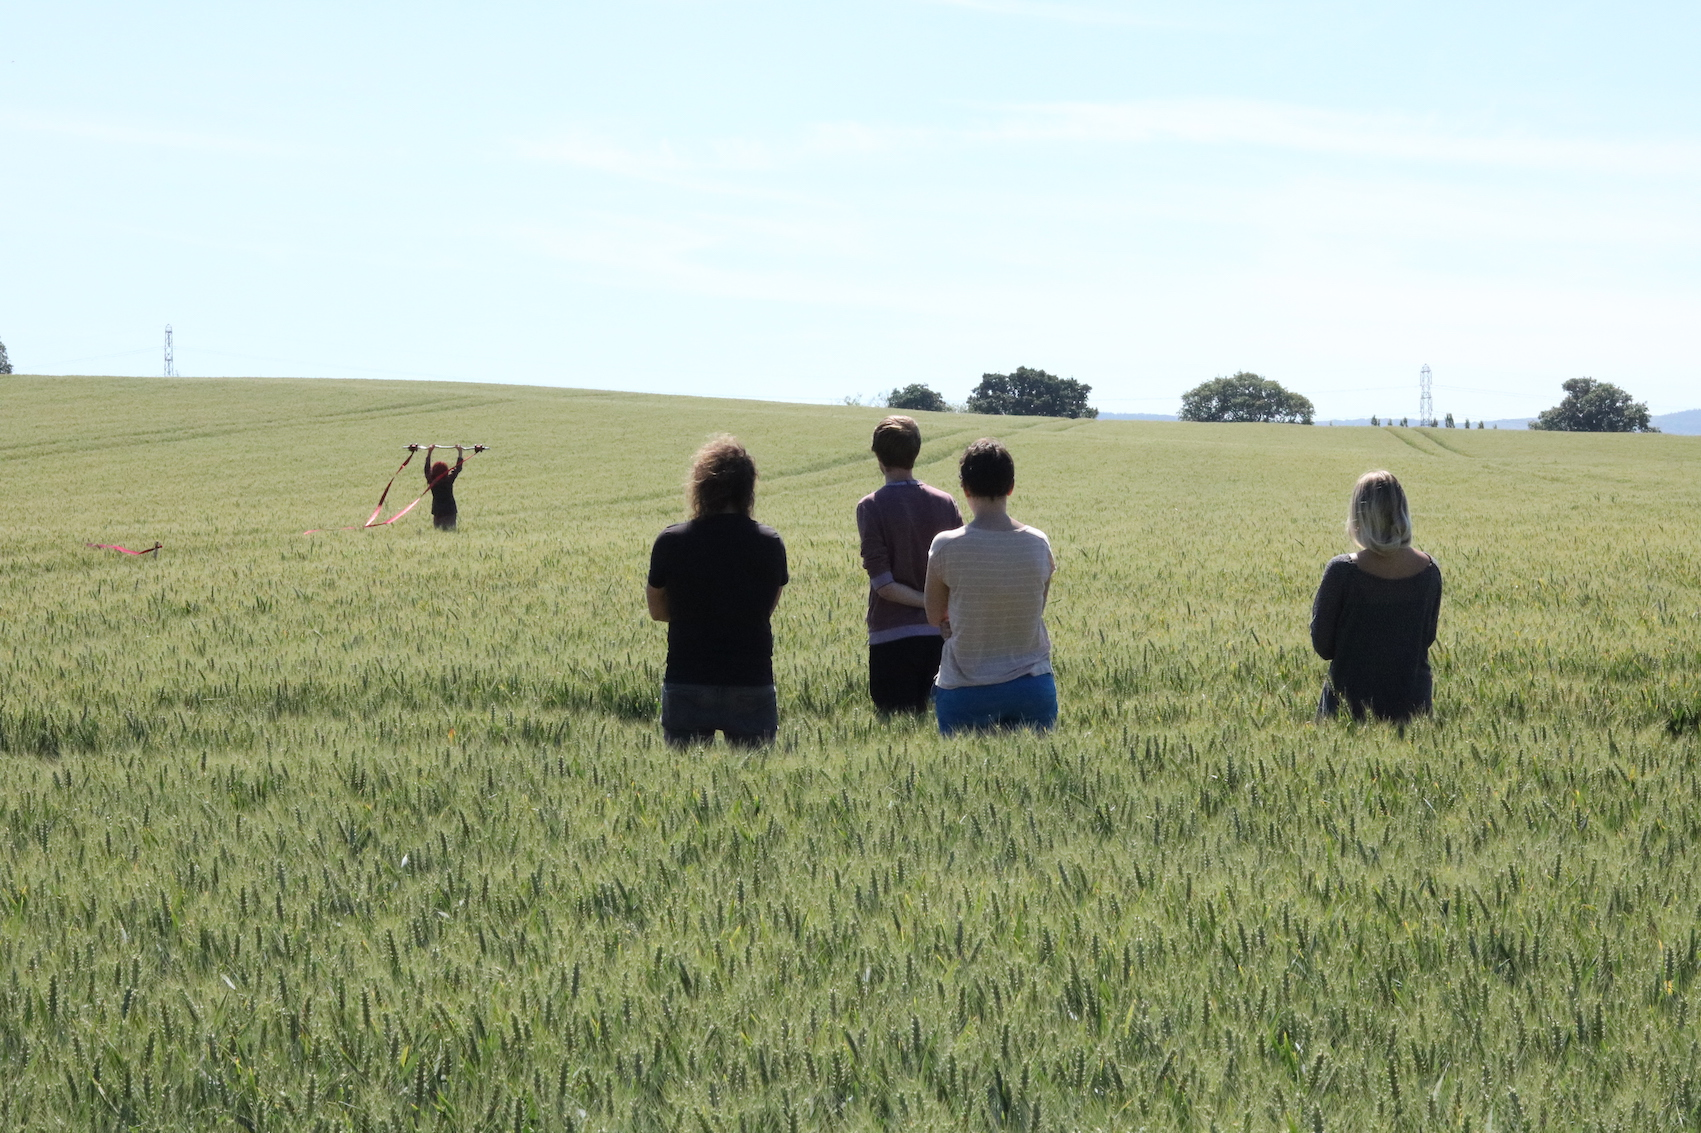 1-hollie-miller-trace-the-field-line_2018-site-specific-durational-performance-at-clayhill-arts-somerset-as-part-of-dialogues-5-photo-liz-west